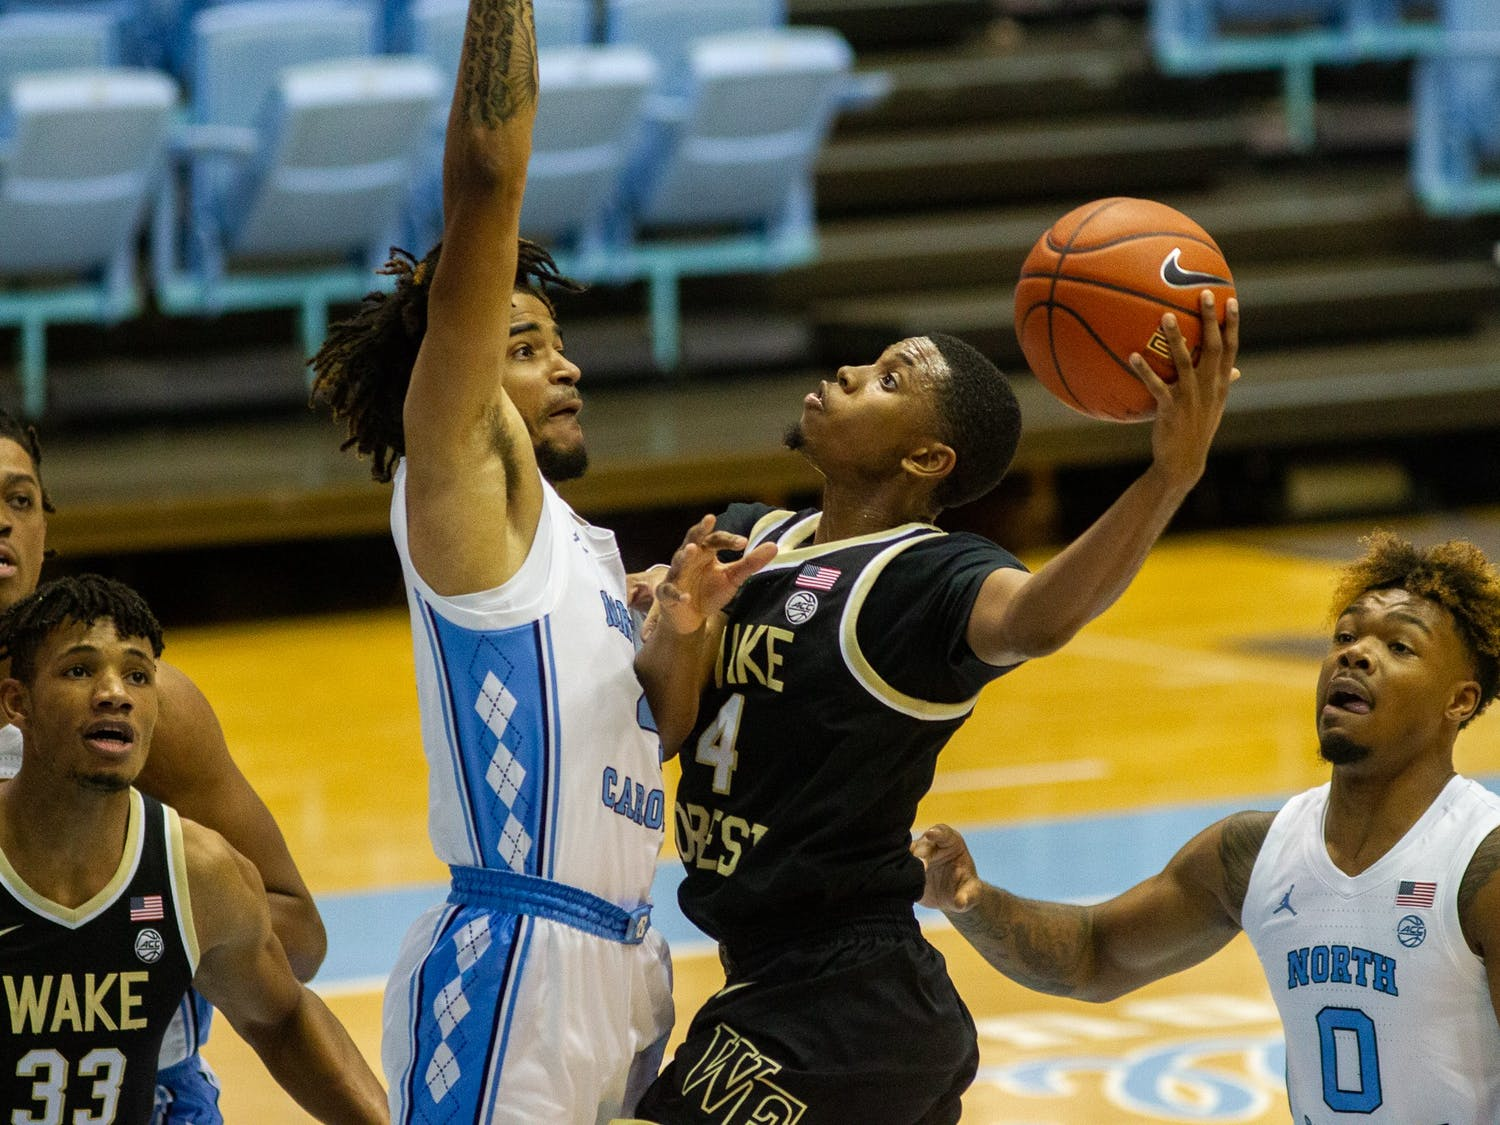 UNC freshman guard RJ Davis (4) defends against Wake Forest junior guard Daivien Williamson (4) in the Dean Smith Center Jan. 20, 2021. The Tar Heels beat the Demon Deacons 80-73.